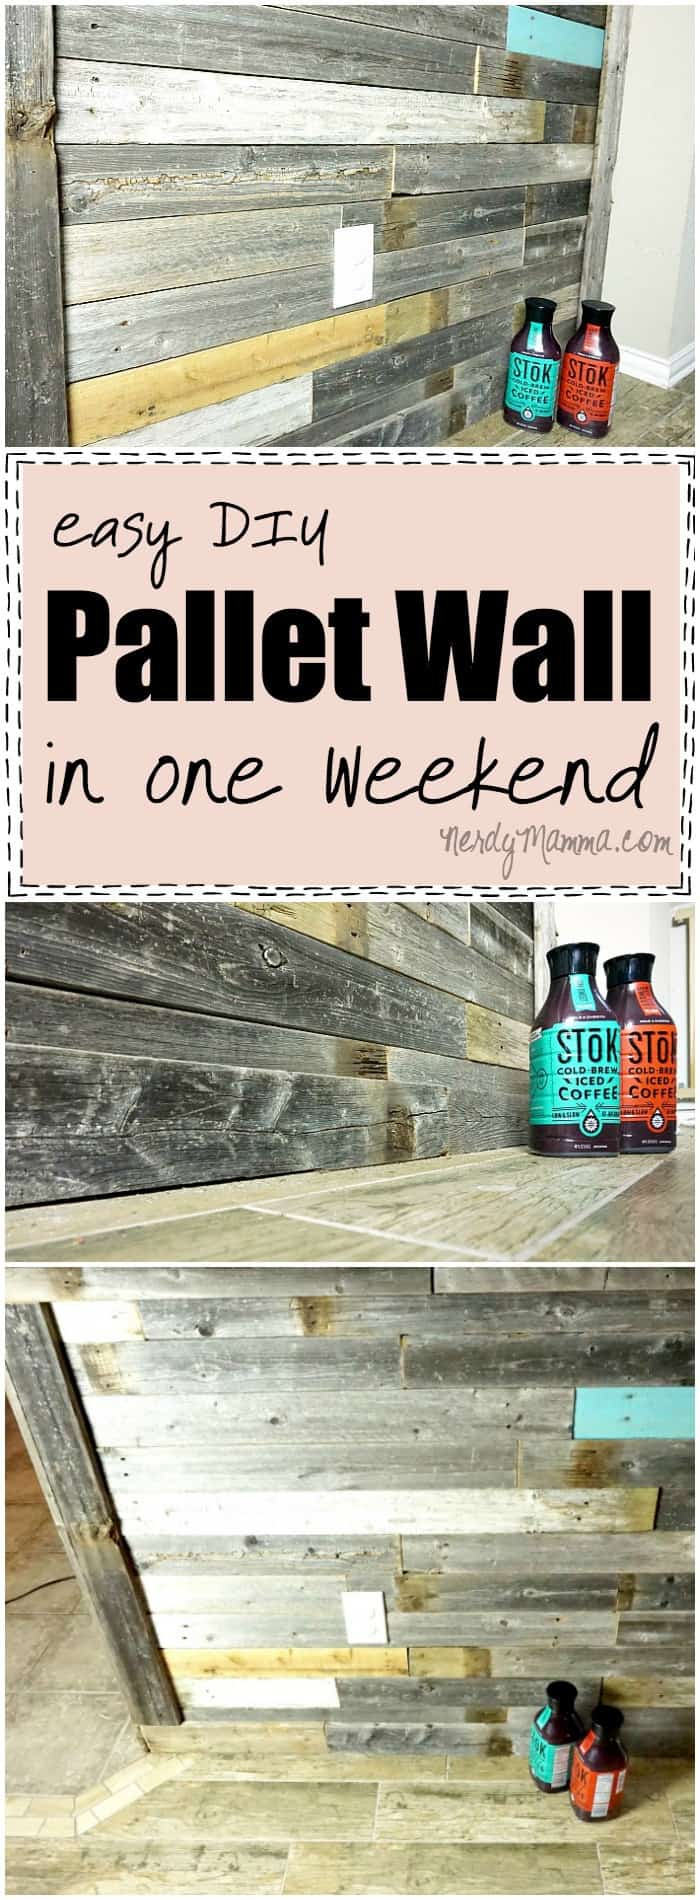 This tutorial for an Easy DIY Pallet Wall is SO simple. I love how all the best tips are gathered in one place and you can just follow these instructions.